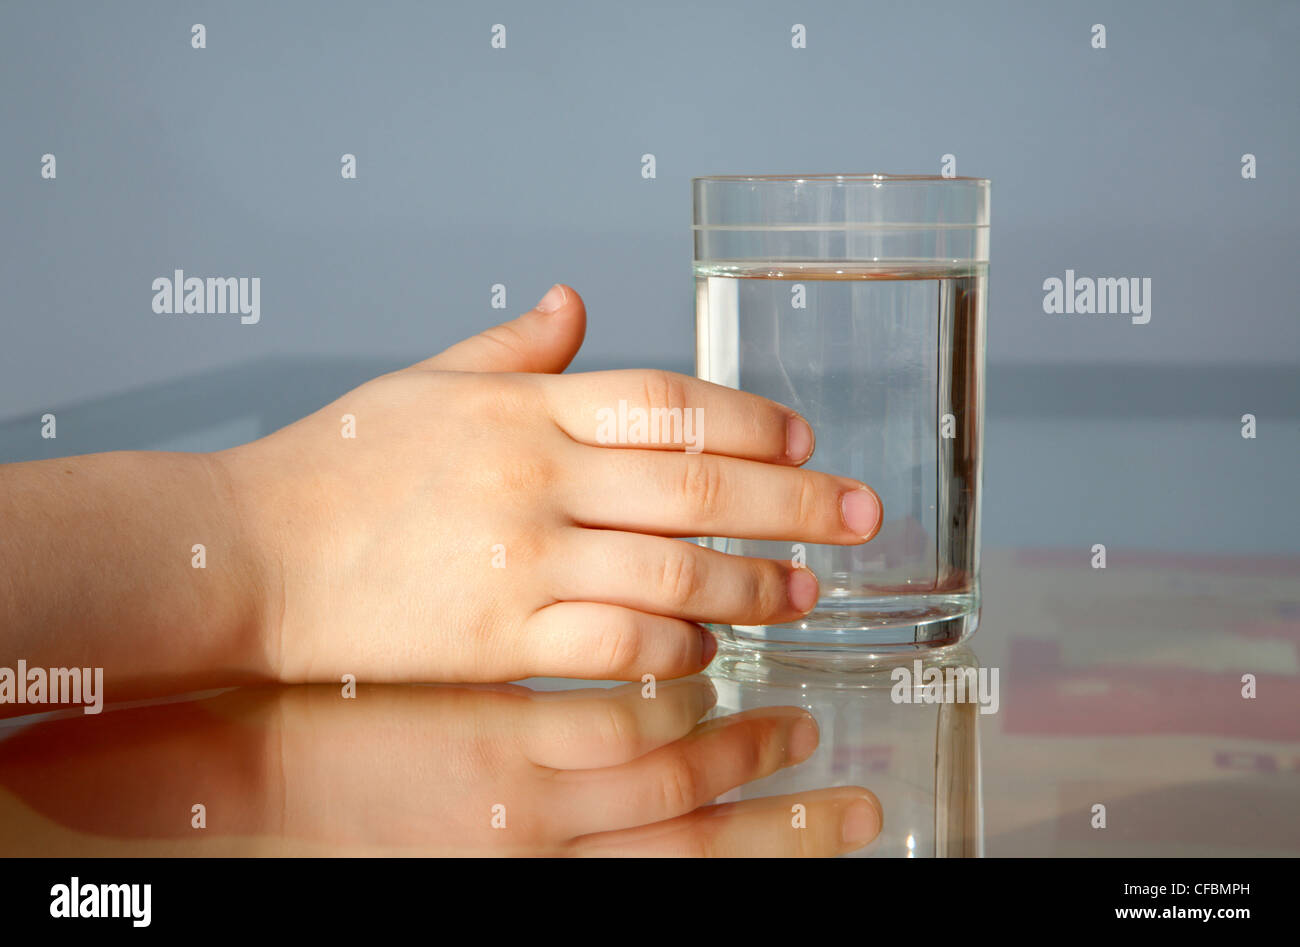 hand of child and glass of water - Stock Image